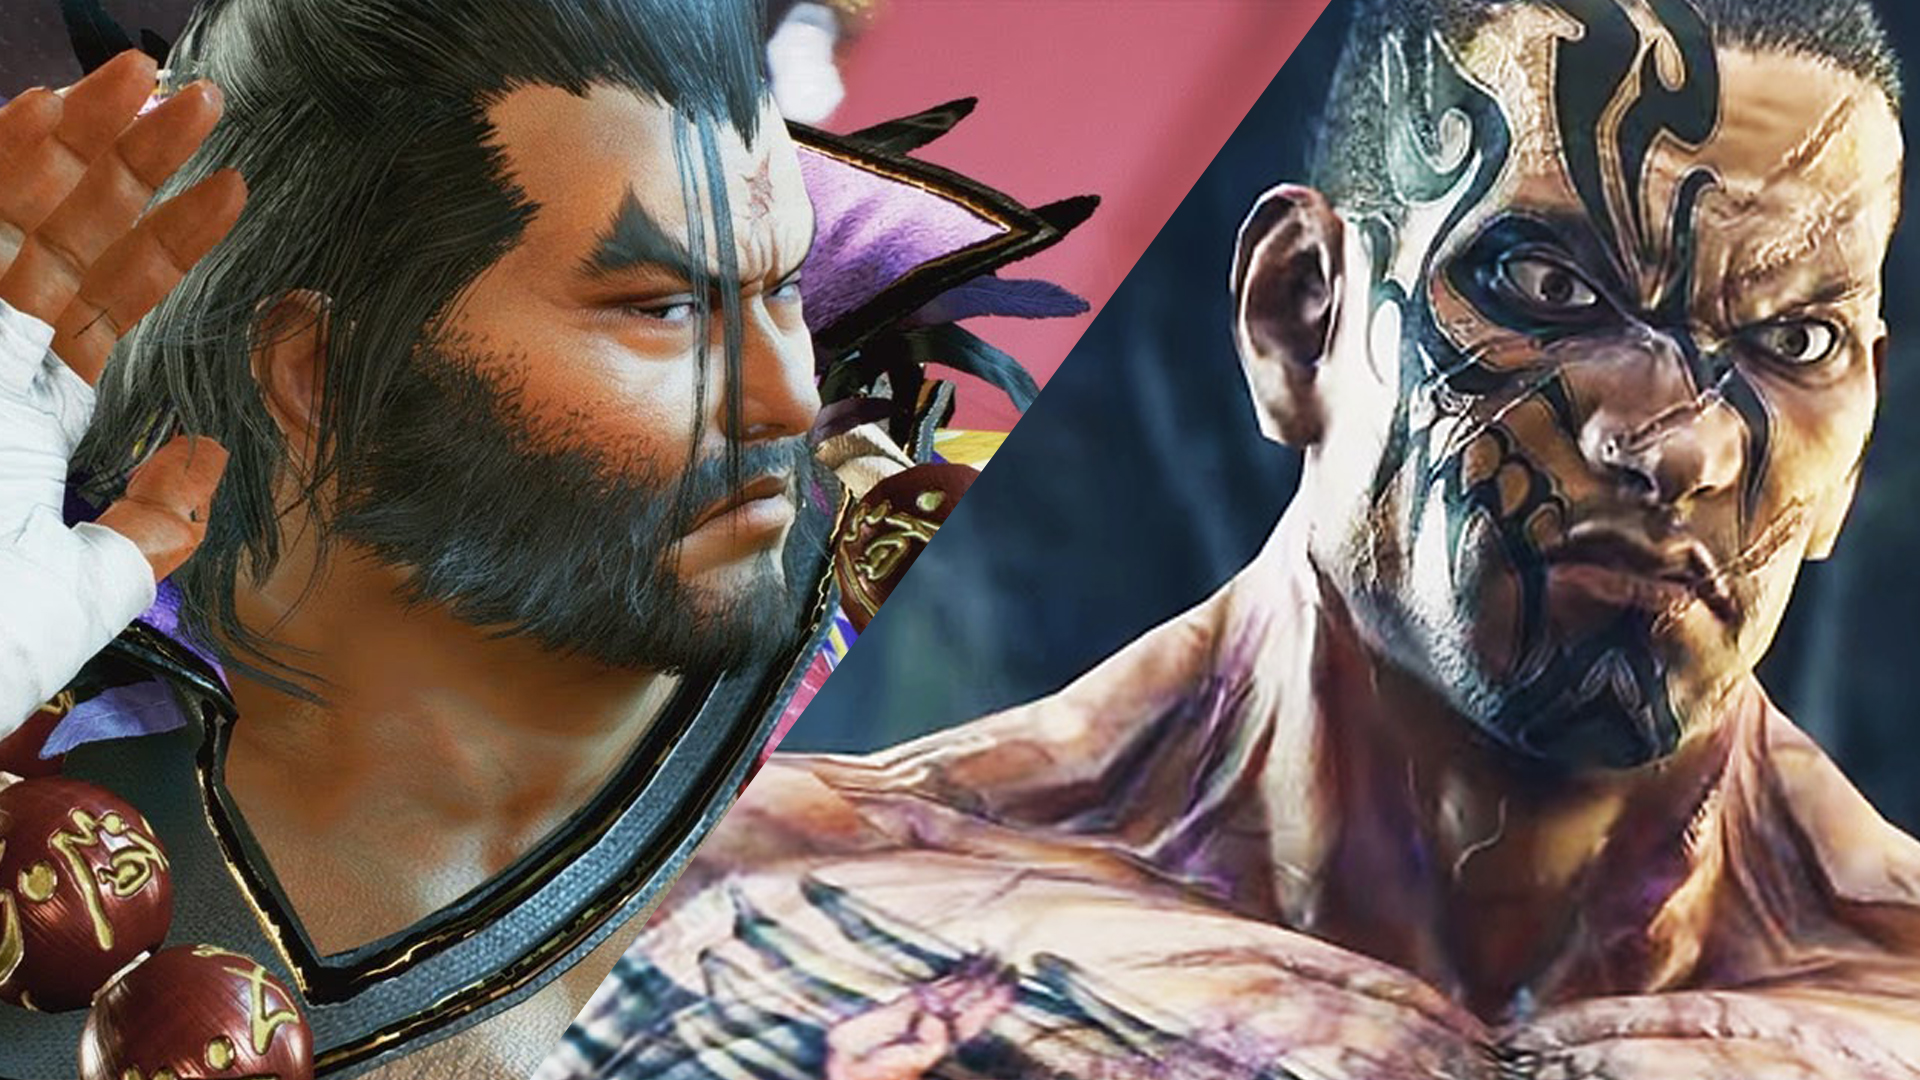 Tekken 7 Dlc Characters Has Ganryu Returning And A New Character Fahkumram Bunnygaming Com